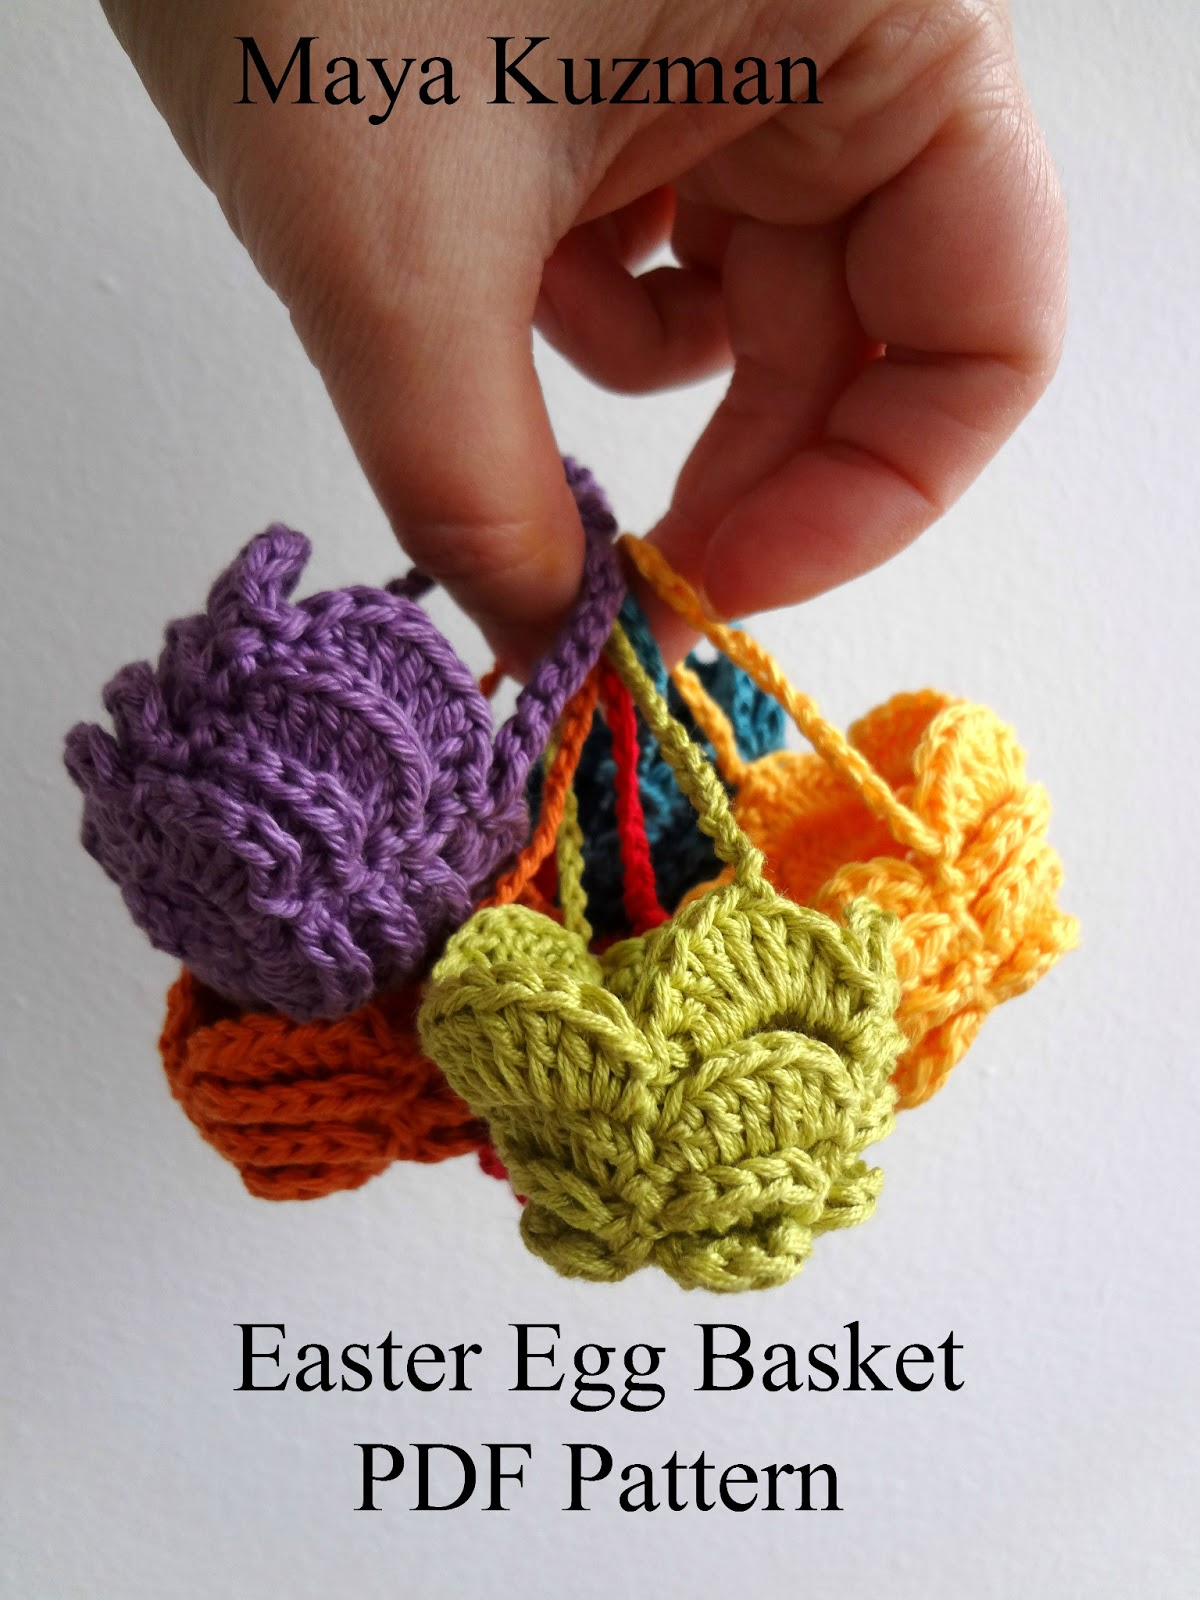 Crochet Easter Basket : Little Treasures: Easter Egg Crochet Basket - PDF Pattern